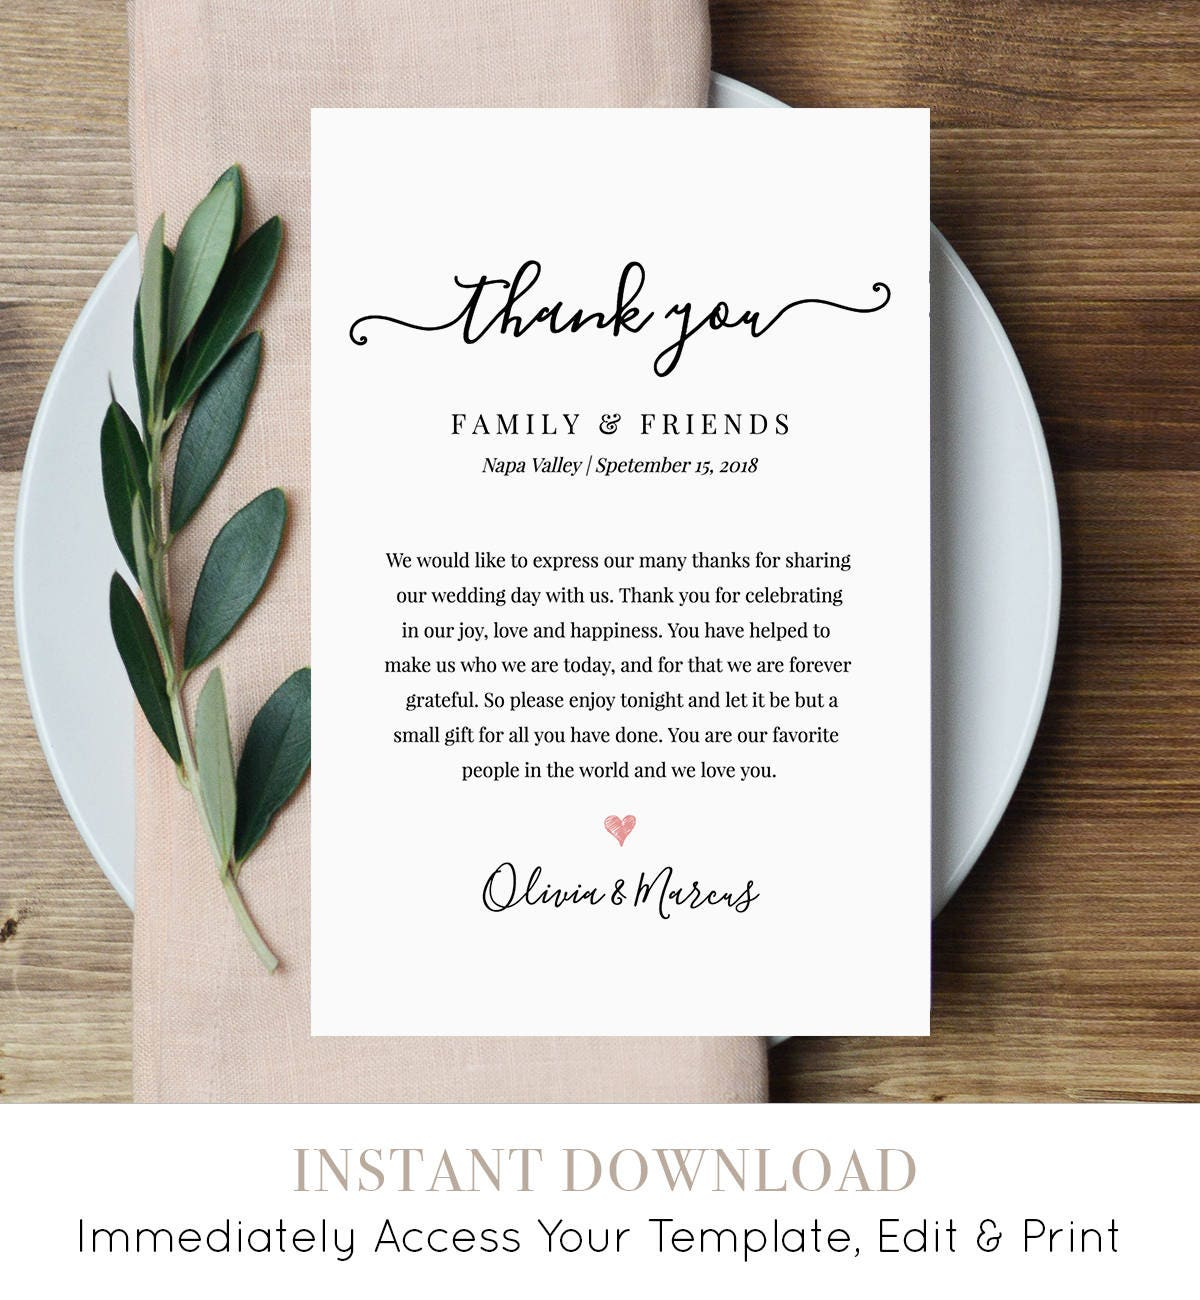 Wedding Thank You Letter Thank You Note Printable Wedding In Lieu